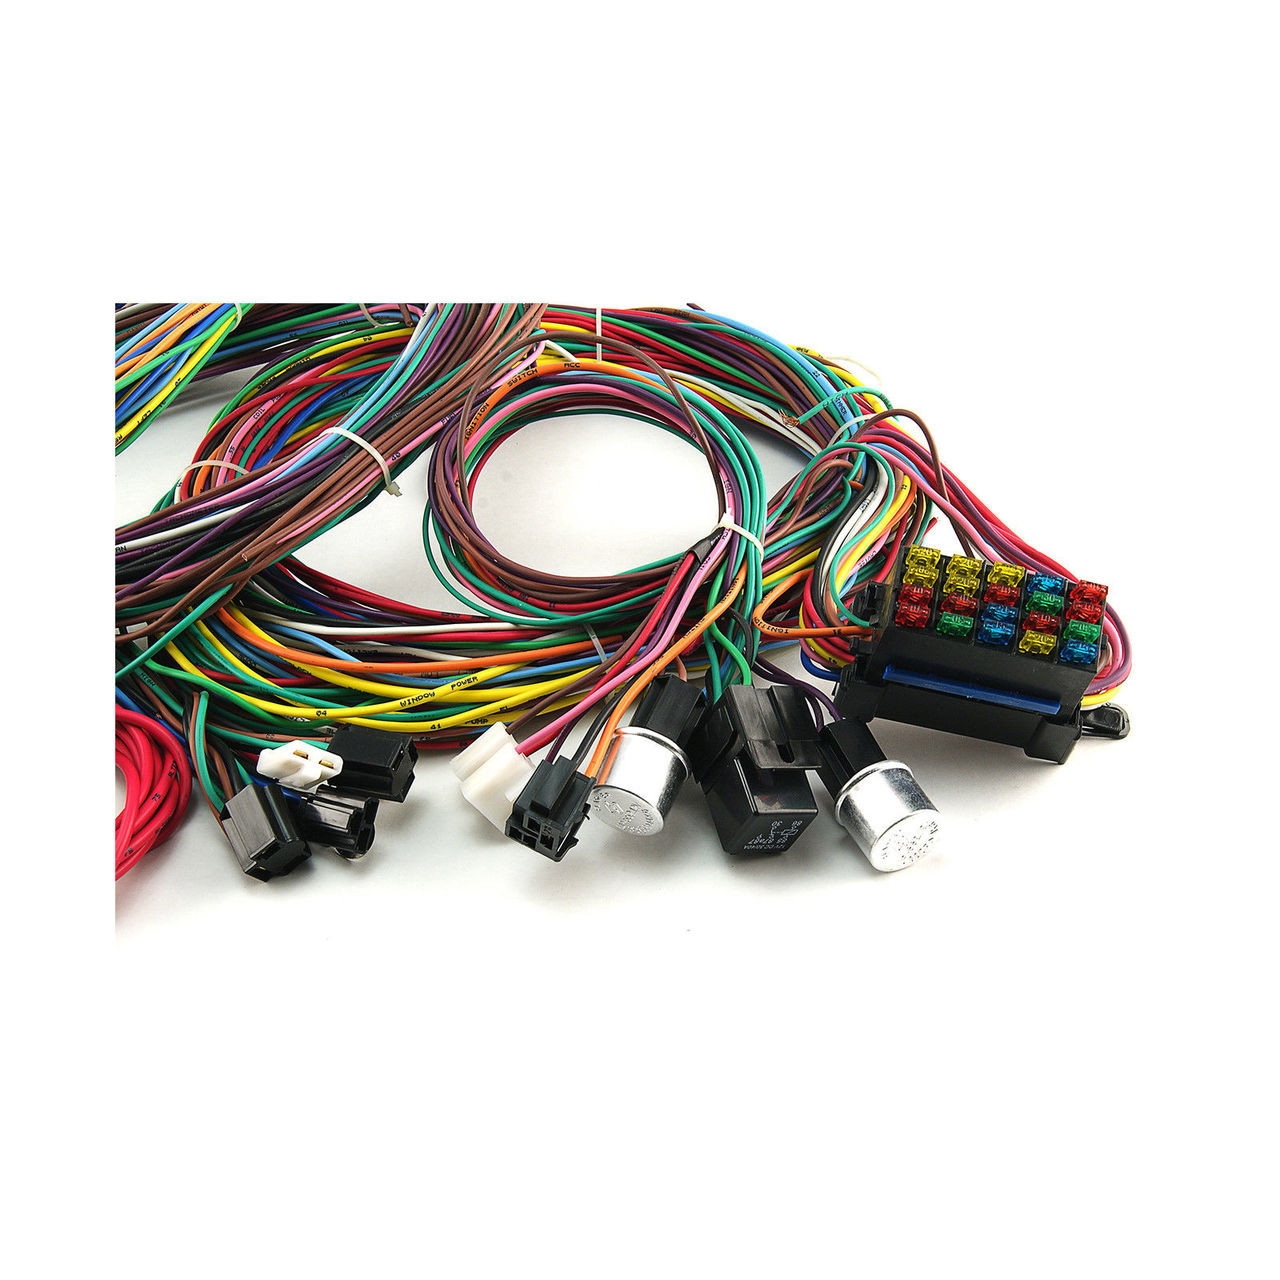 medium resolution of tlg universal 20 circuit wiring harness kit suit hot rod race car price 299 00 image 1 larger more photos